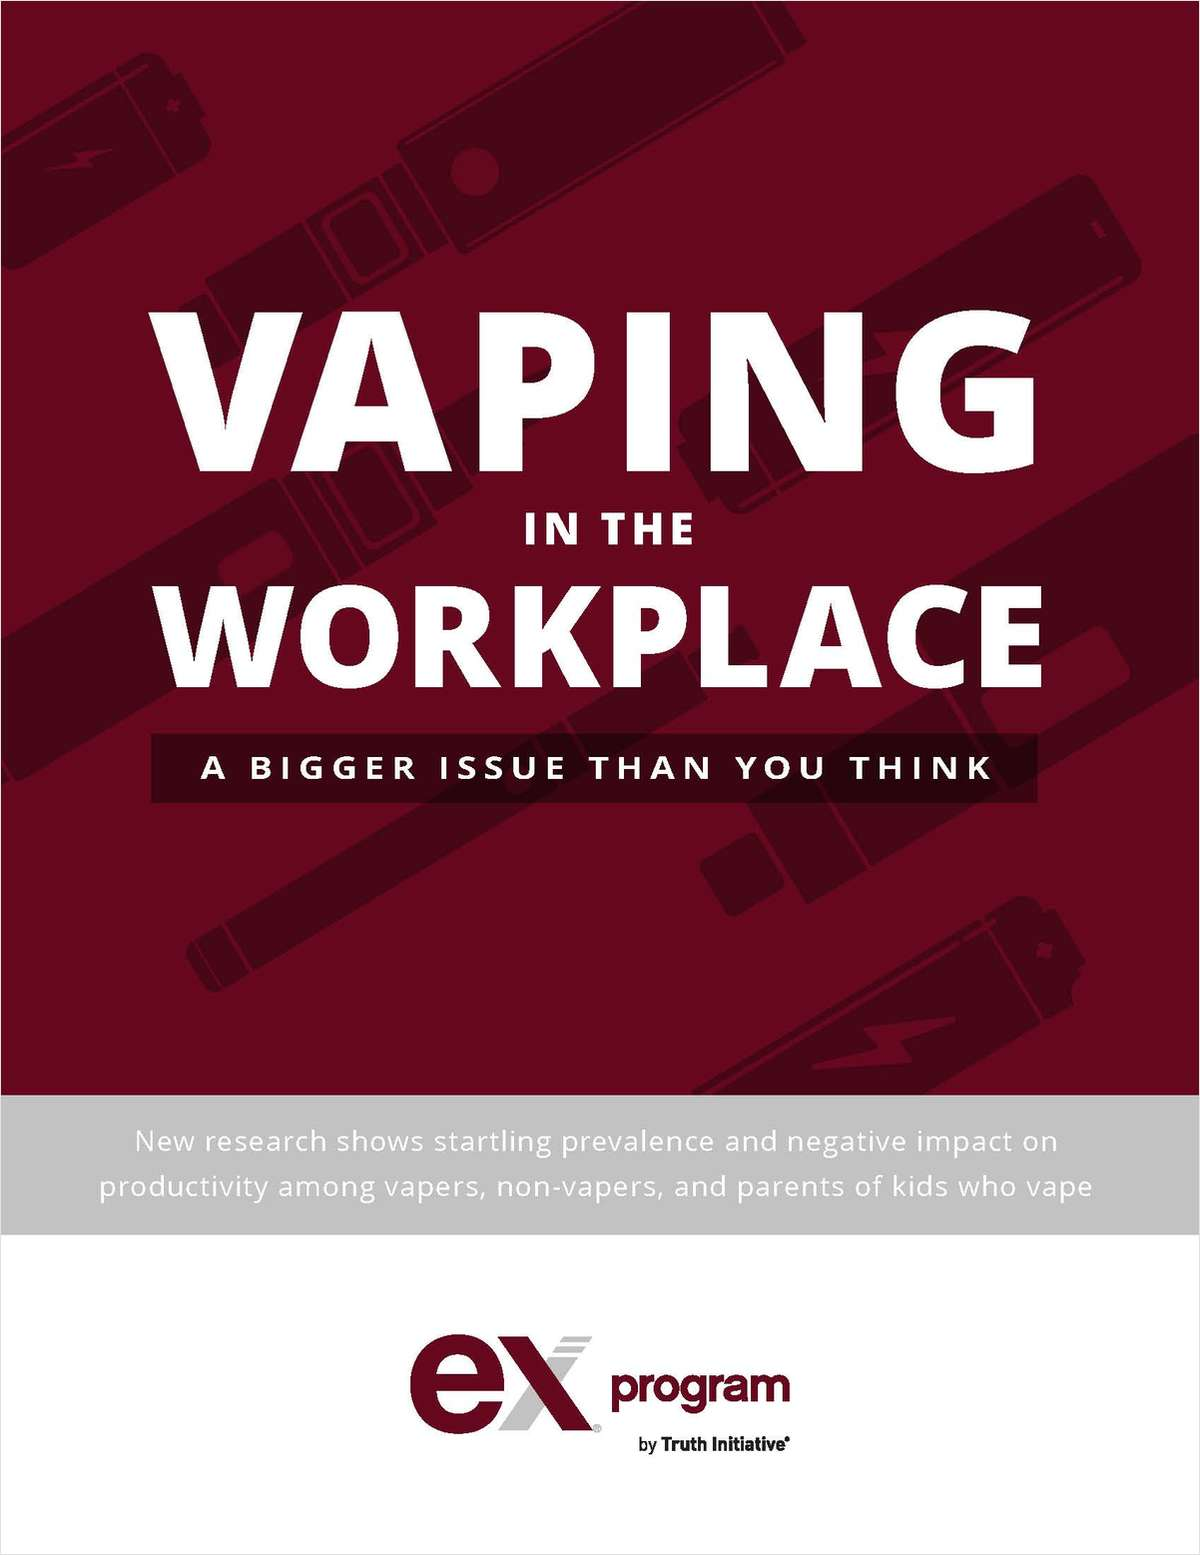 Vaping in the Workplace: A Bigger Issue than You Think